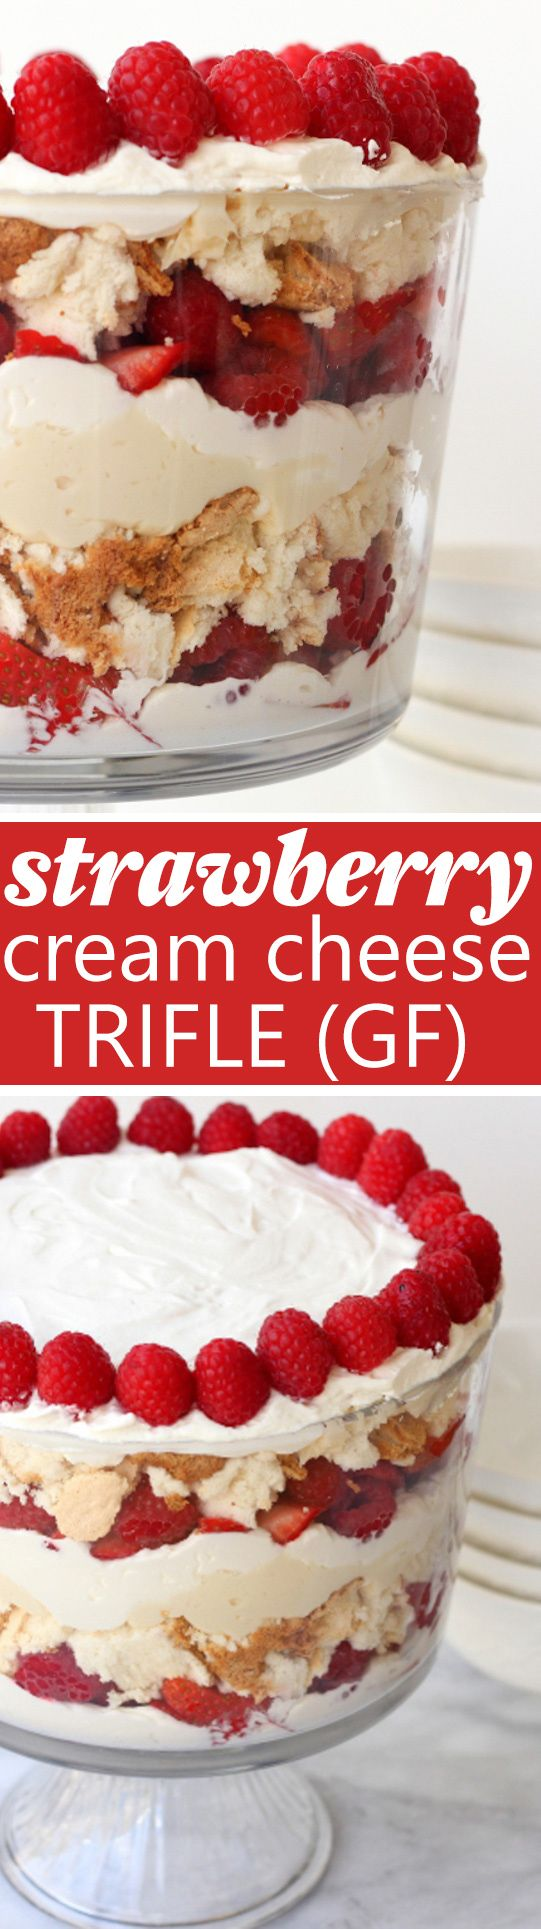 Sweet Berry Trifle With Almond Cream Cheese Gluten Free